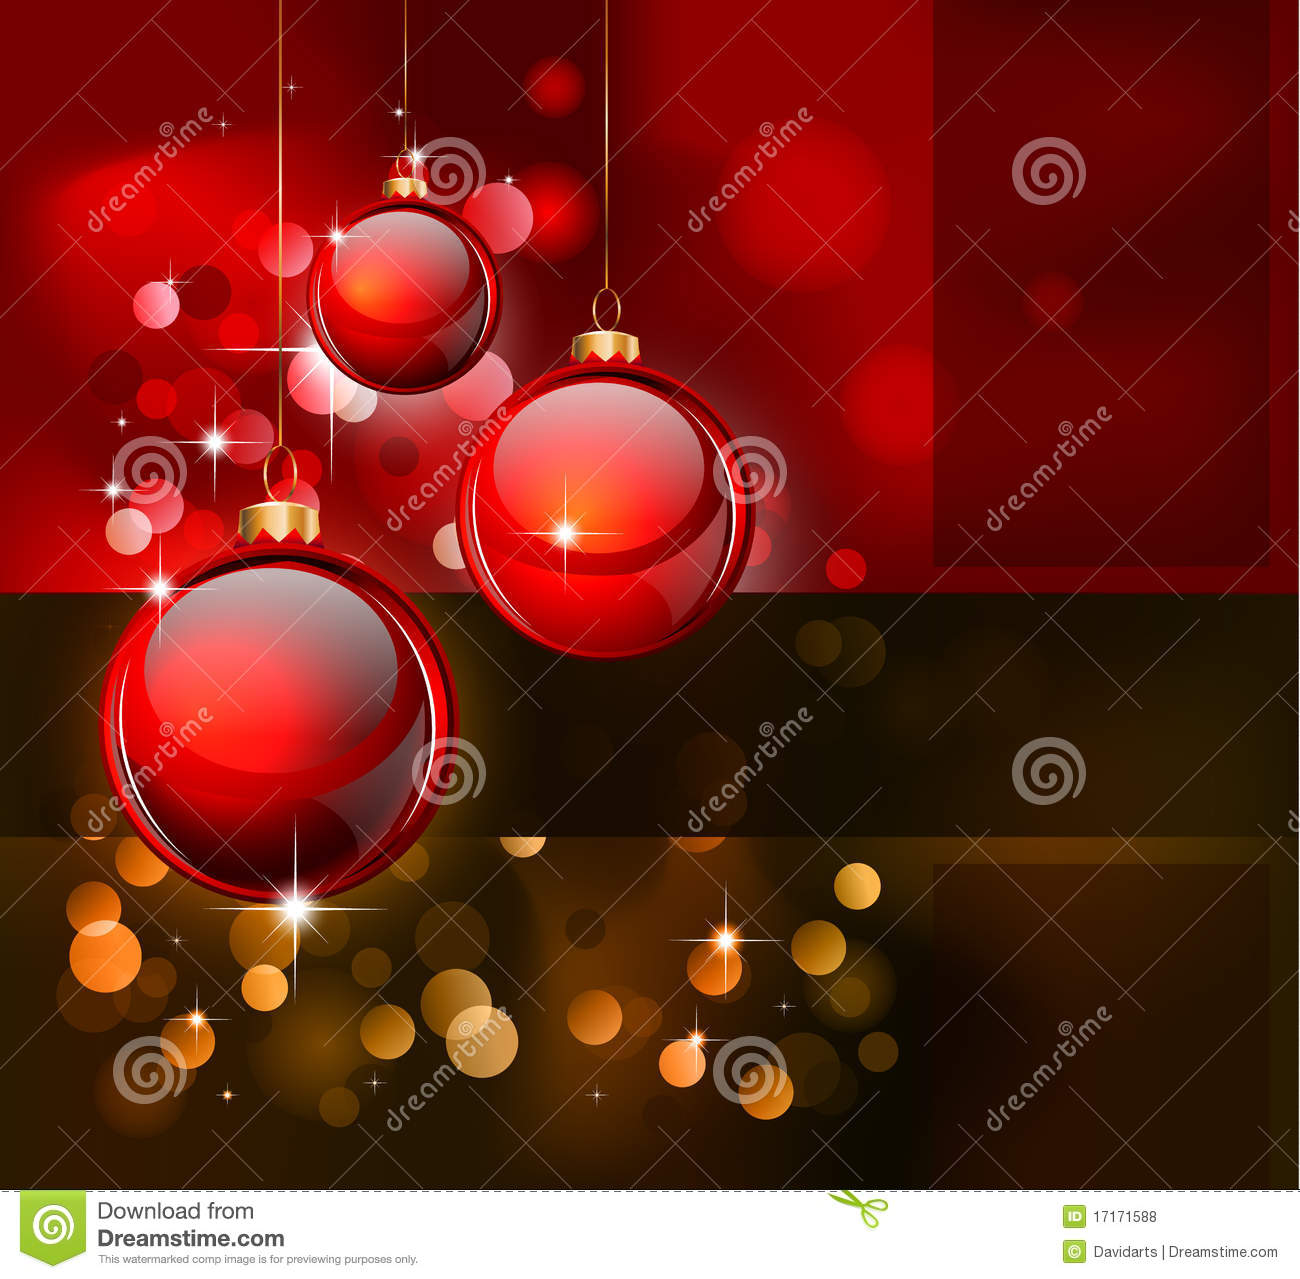 christmas elegant background for flyers or posters stock images christmas elegant background for flyers or posters royalty stock photos